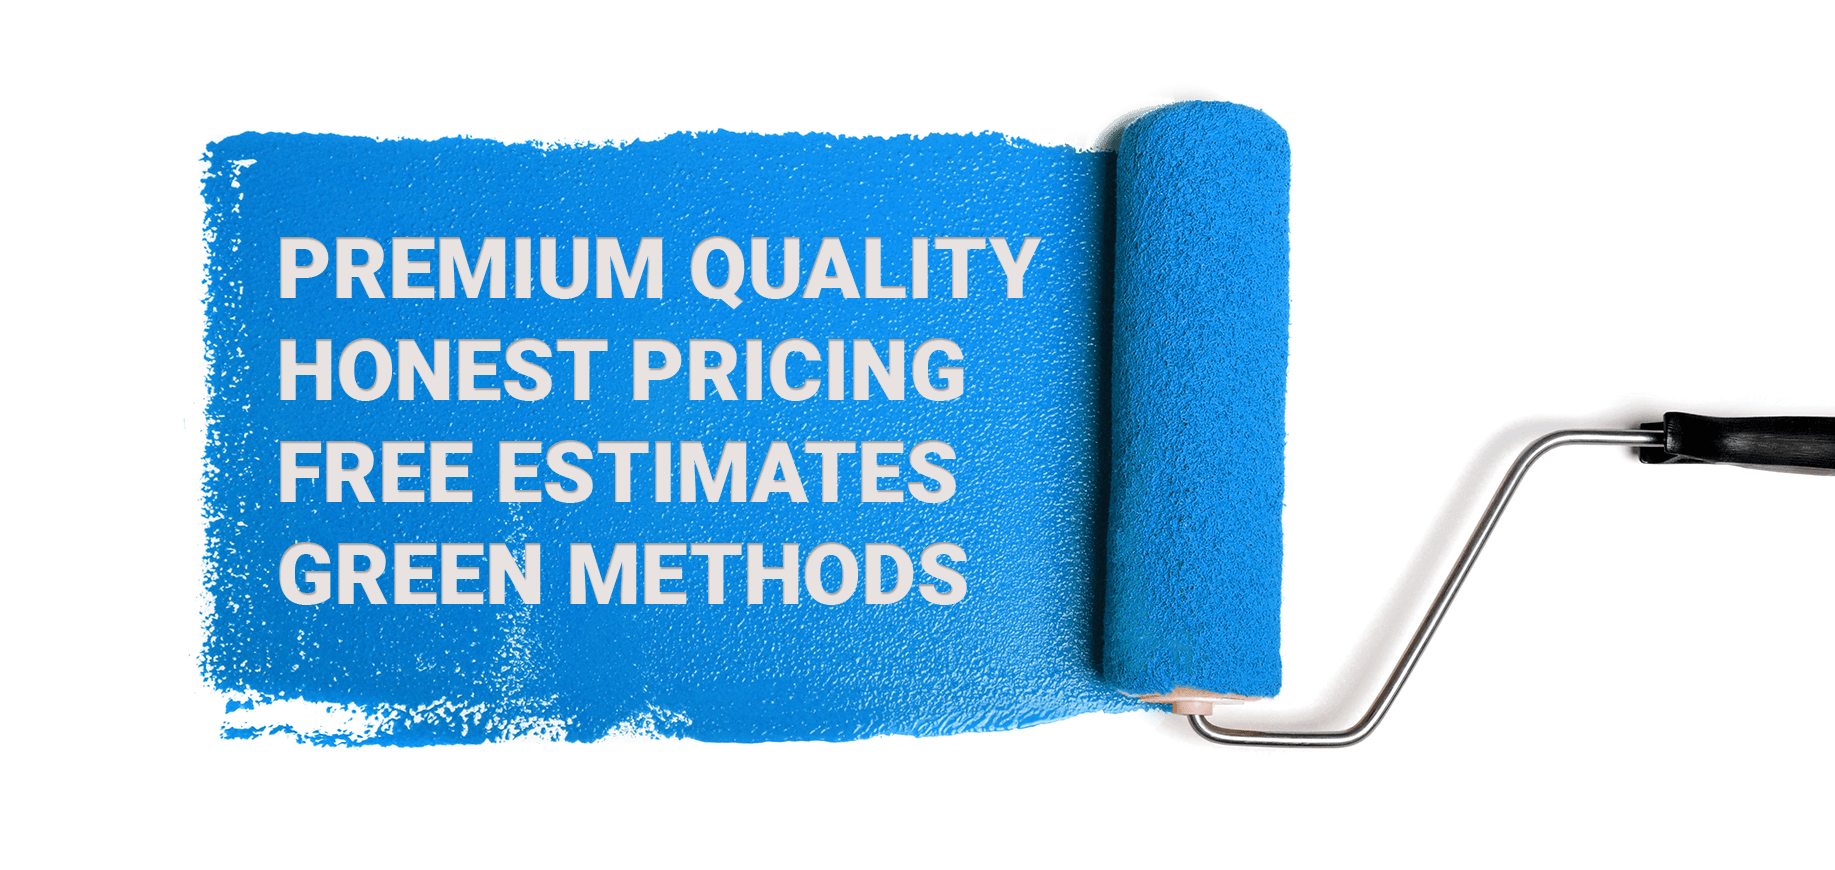 Premium Quality and Honest Pricing from New Approach Painting